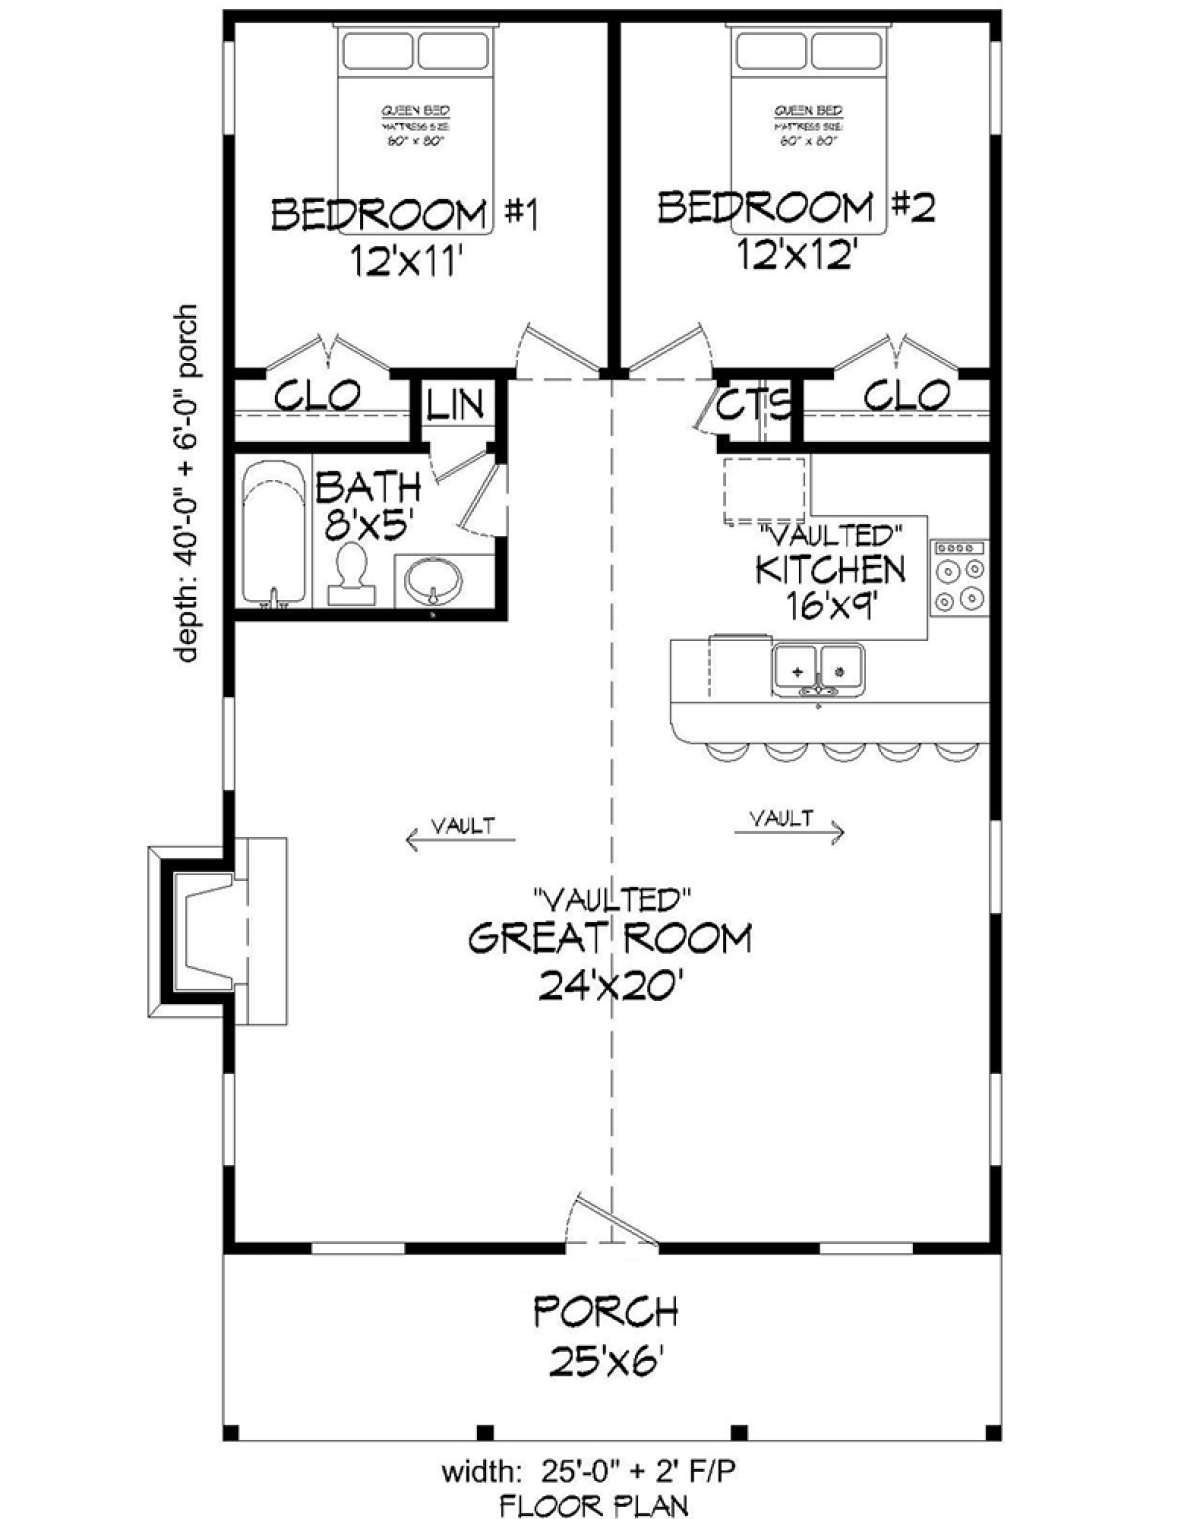 House Plan 940 00099 Cabin Plan 1 000 Square Feet 2 Bedrooms 1 Bathroom In 2020 Cabin Plans Tiny House Floor Plans House Plans